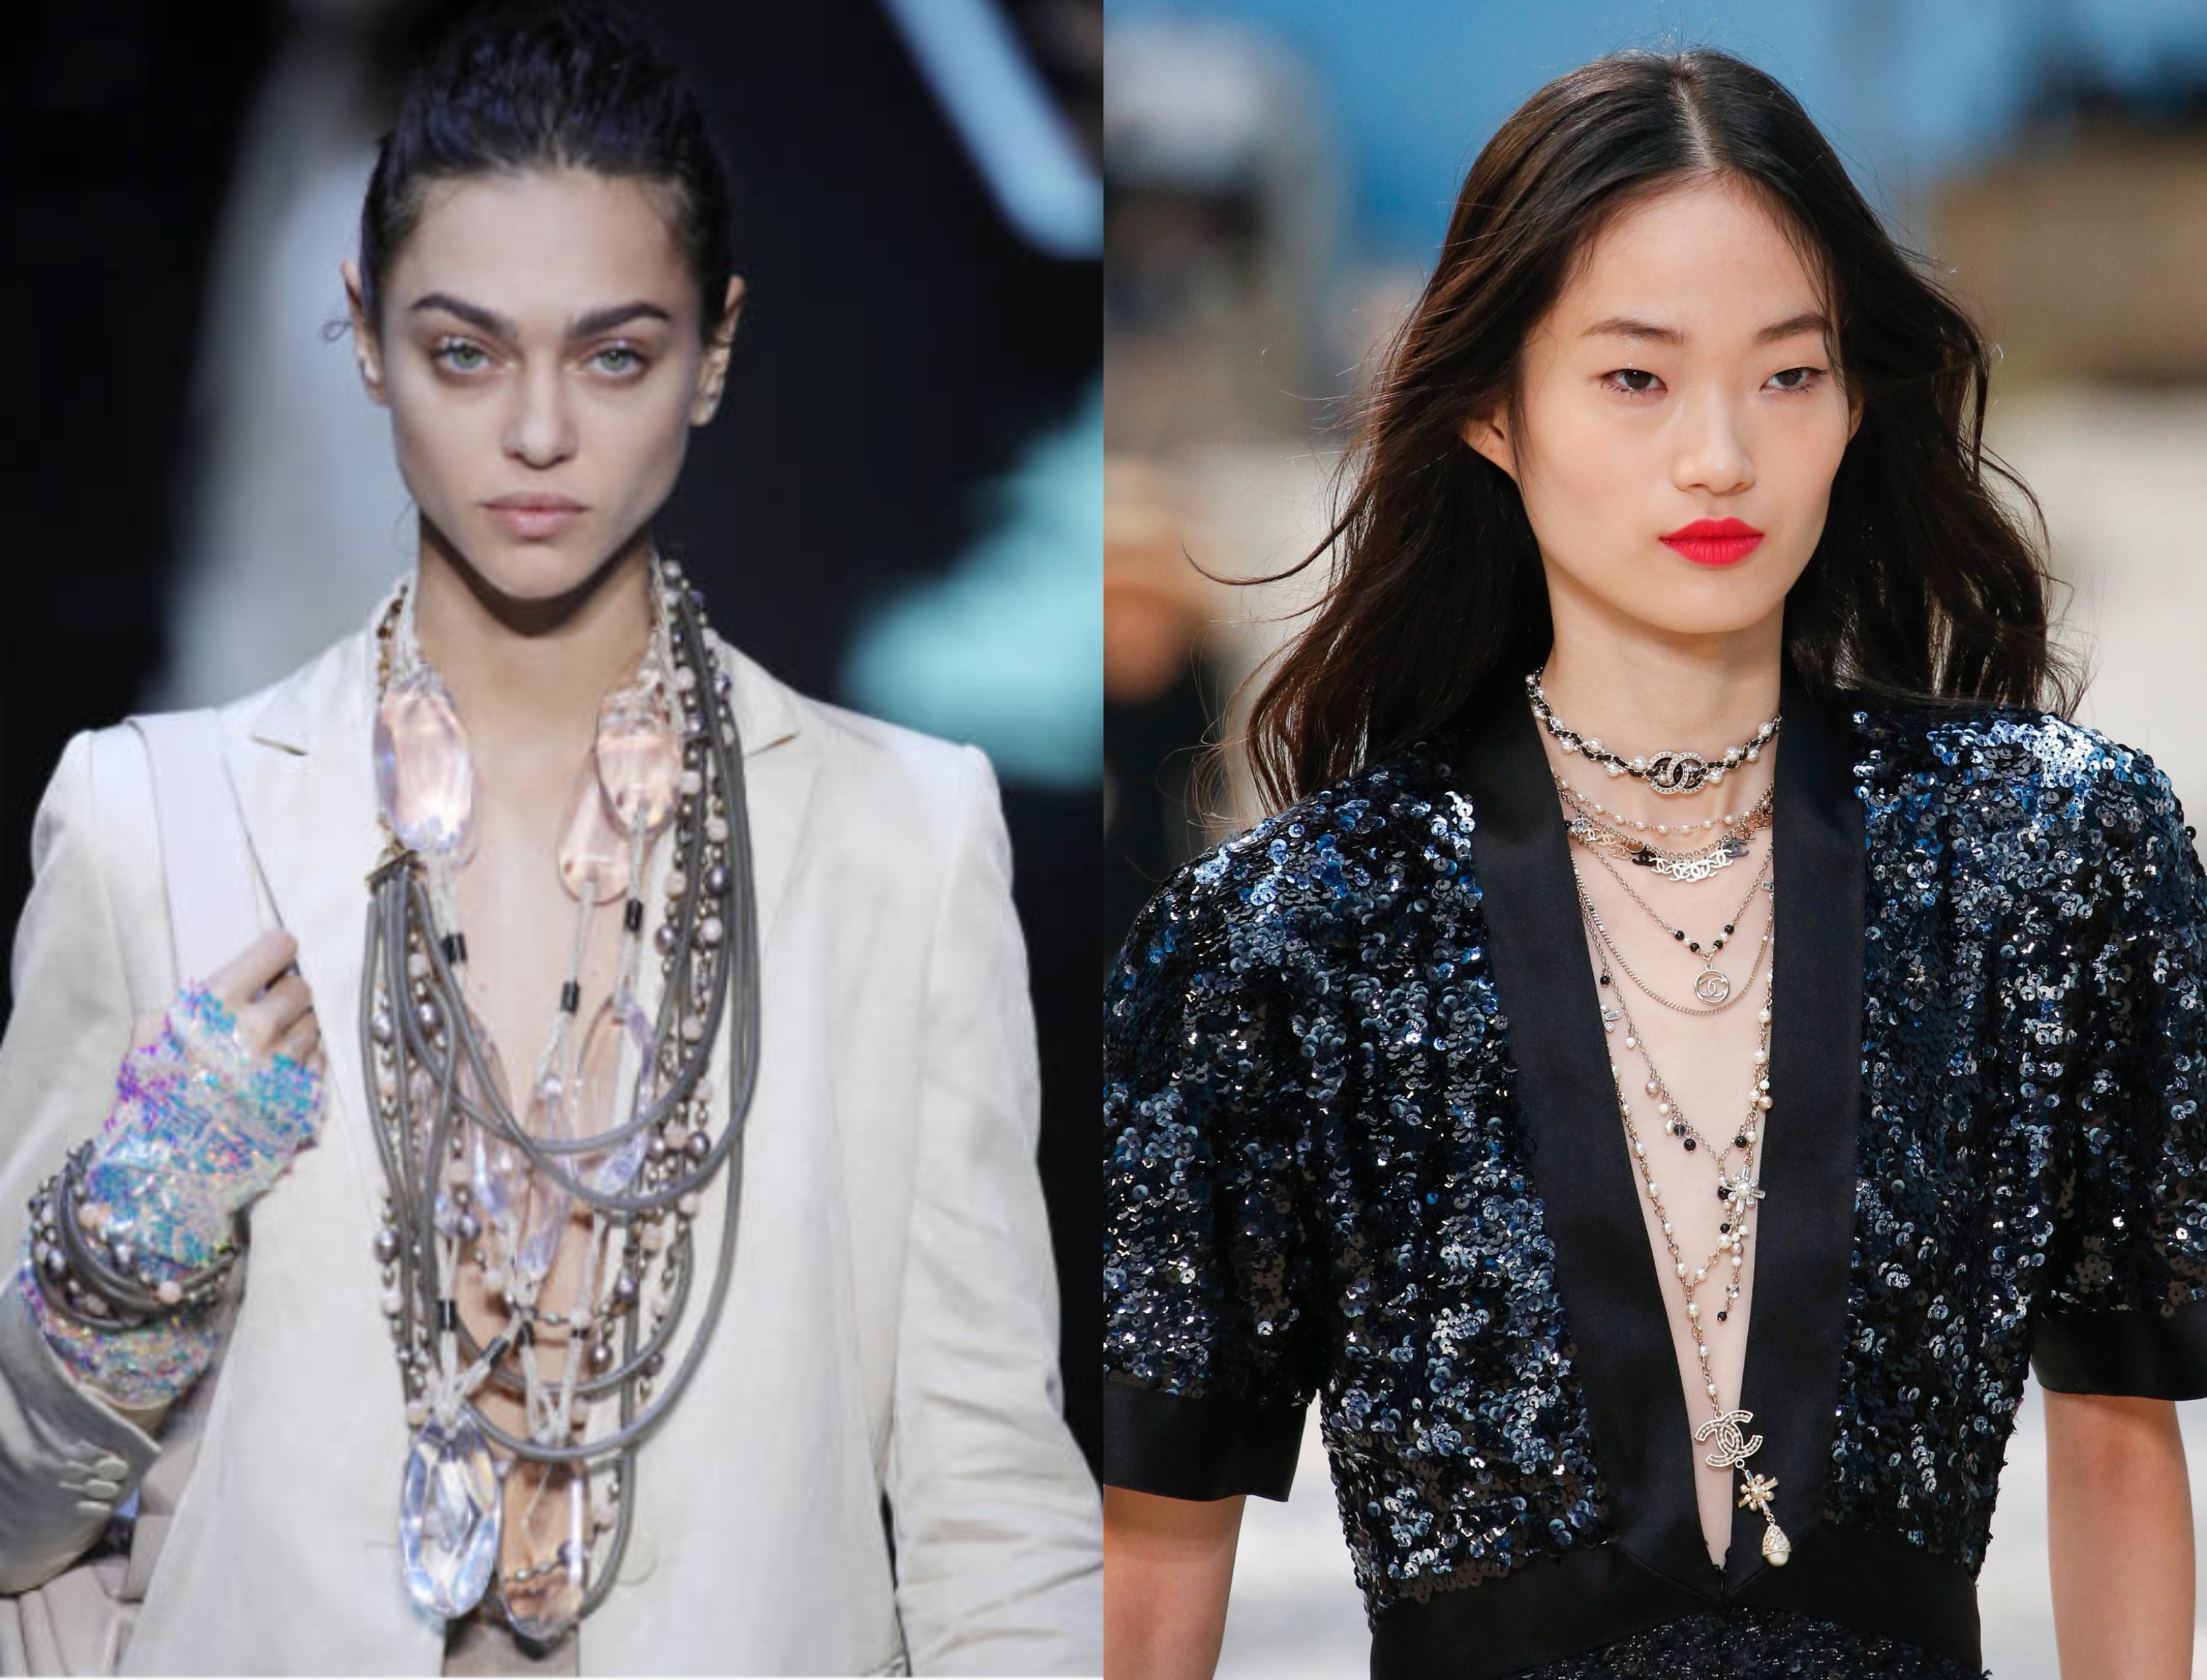 Jewellery trends-spring summer fashion week 2019-NewYork Fashion Week 2019-Milan Fashion Week 2019- Paris Fashion Week 2019- Jewellery Shopping – Accessories- Pipa Bella- Maithili Kabre- Tijori – Amrapalli- Sea Shells – Heart Shaped Jewellery- Crystal – Chandeliers – Hoops- Met Jewellery – Earrings – Necklace – Beads – Glasswork - Oscar De La Renta –Versace-Salvatore Ferragamo-Chanel-Marc Jacobs- Fendi-Loewe-Chanel-Balenciaga- Altuzarra- Anna Sui-Alyssa Coscarelli-jewellery- Ahmedabad- Shopping-Kitsch by Nik-Aditi Bhatt Accessories-Anviksha-Chaakmaati-Hyperbole Accessories-June-De'anma